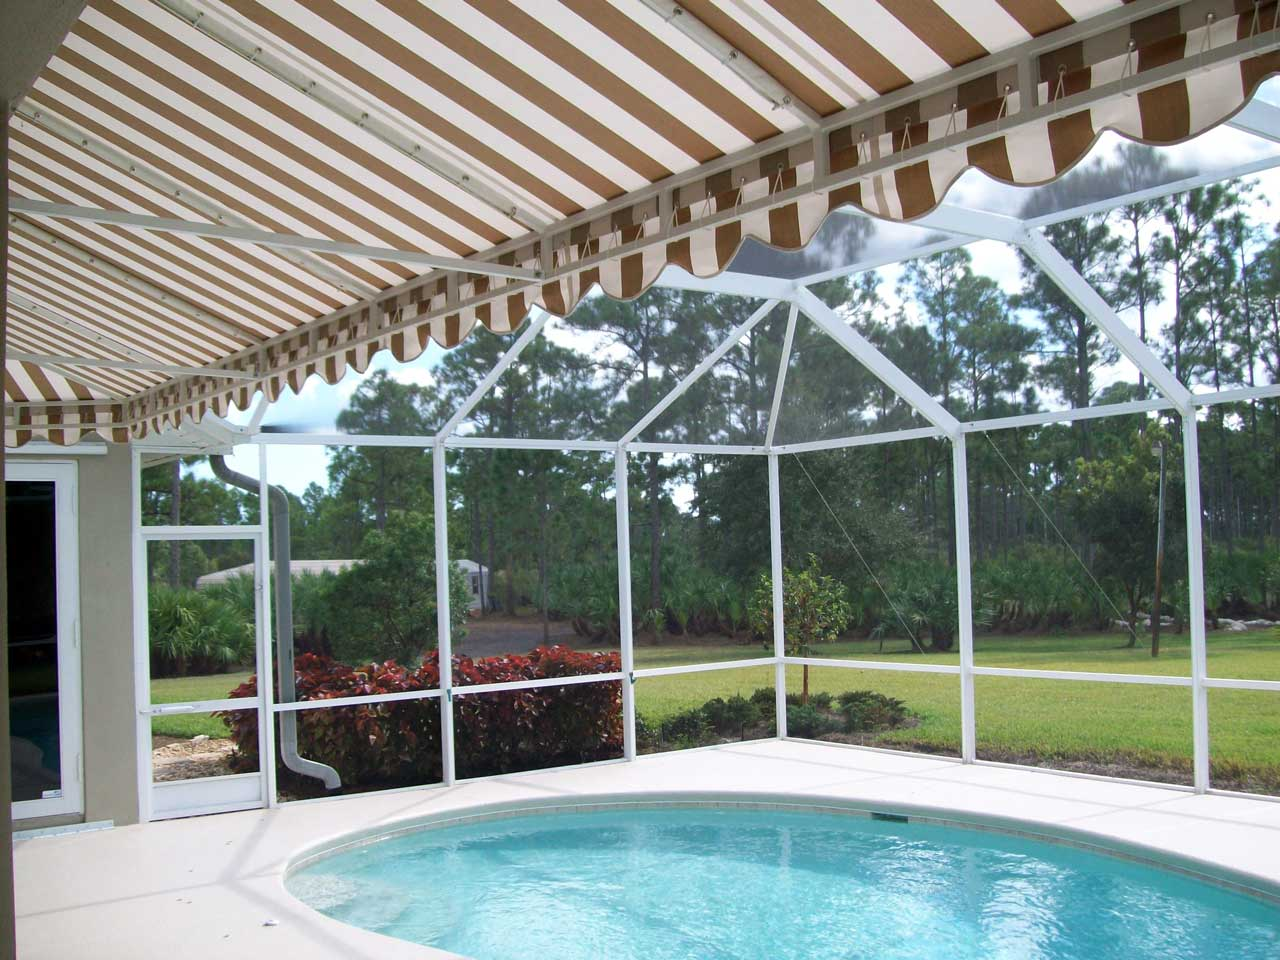 Residential pool patio